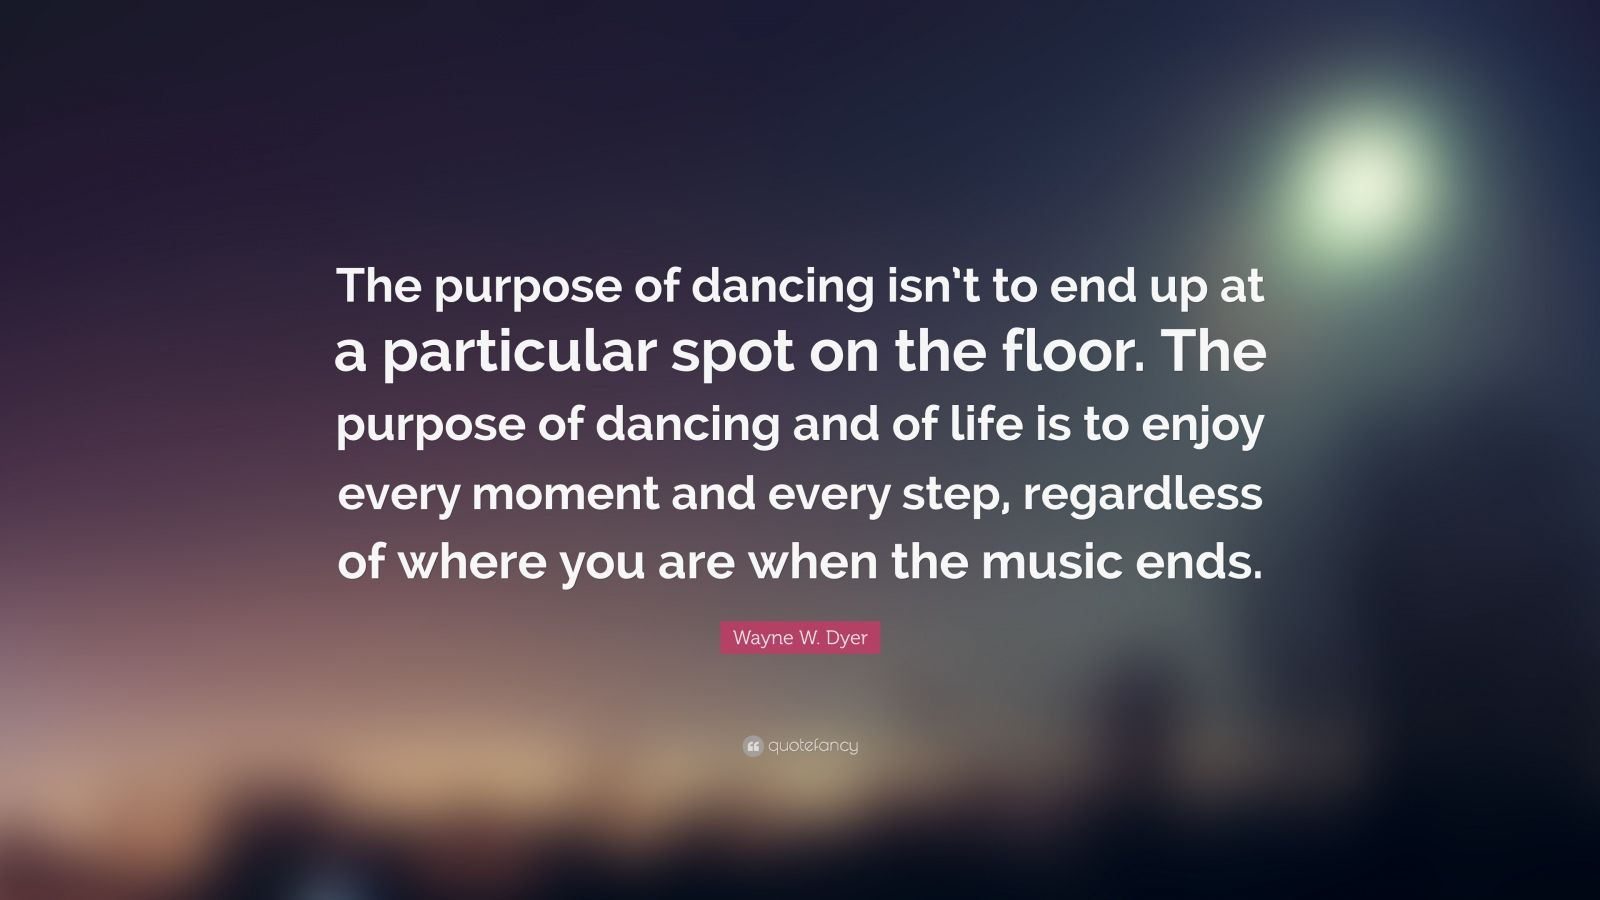 "Wayne W. Dyer Quote: ""The purpose of dancing isn't to end up at a particular spot on the floor. The purpose of dancing and of life is to enjoy every moment and every step, regardless of where you are when the music ends."""